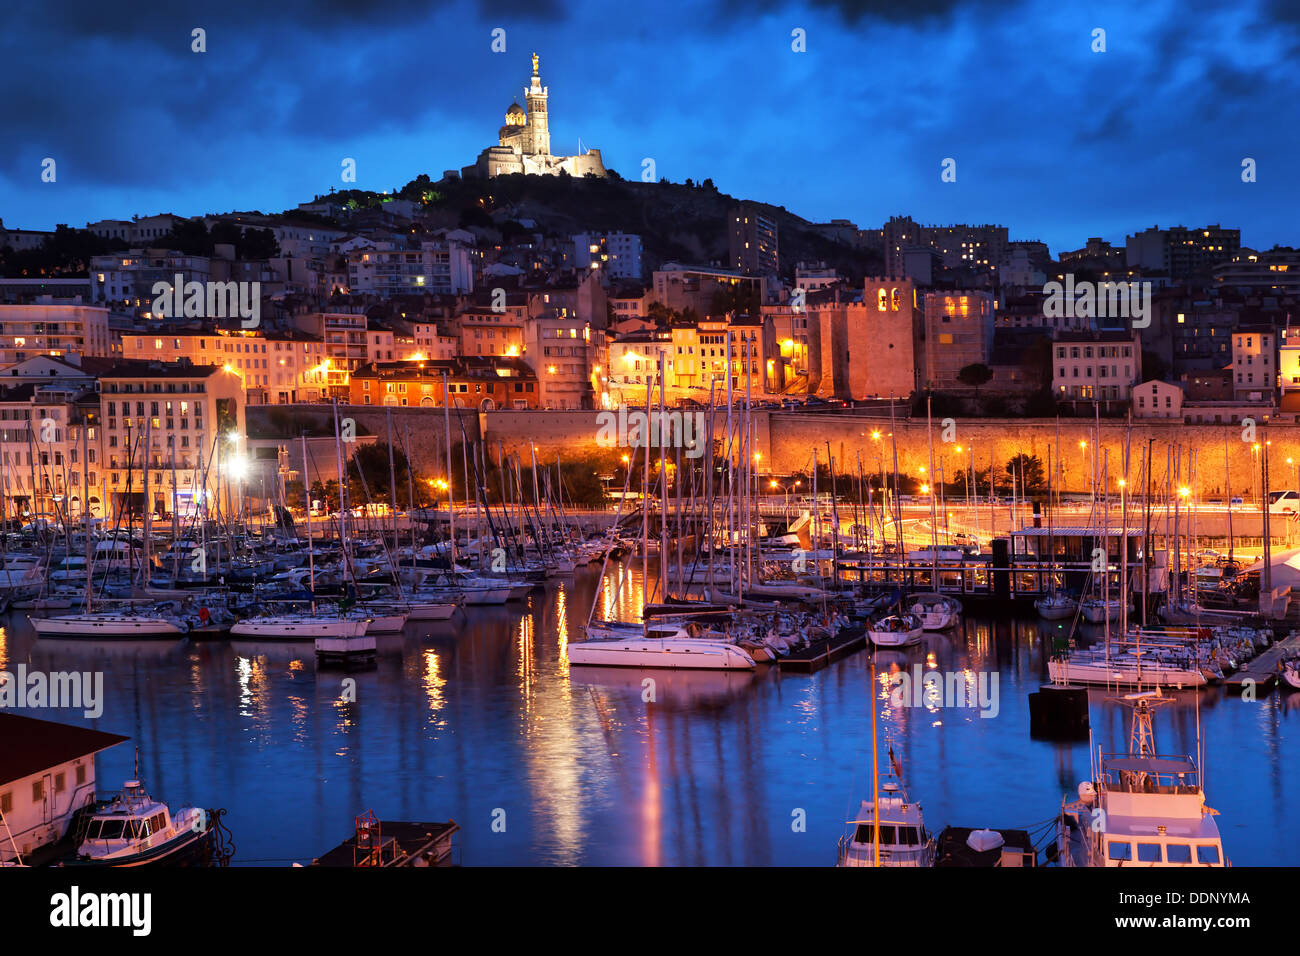 Marseille, Old Port harbour / Vieux Port, France at night with view of the Notre Dame de la Garde on the hill at night - Stock Image